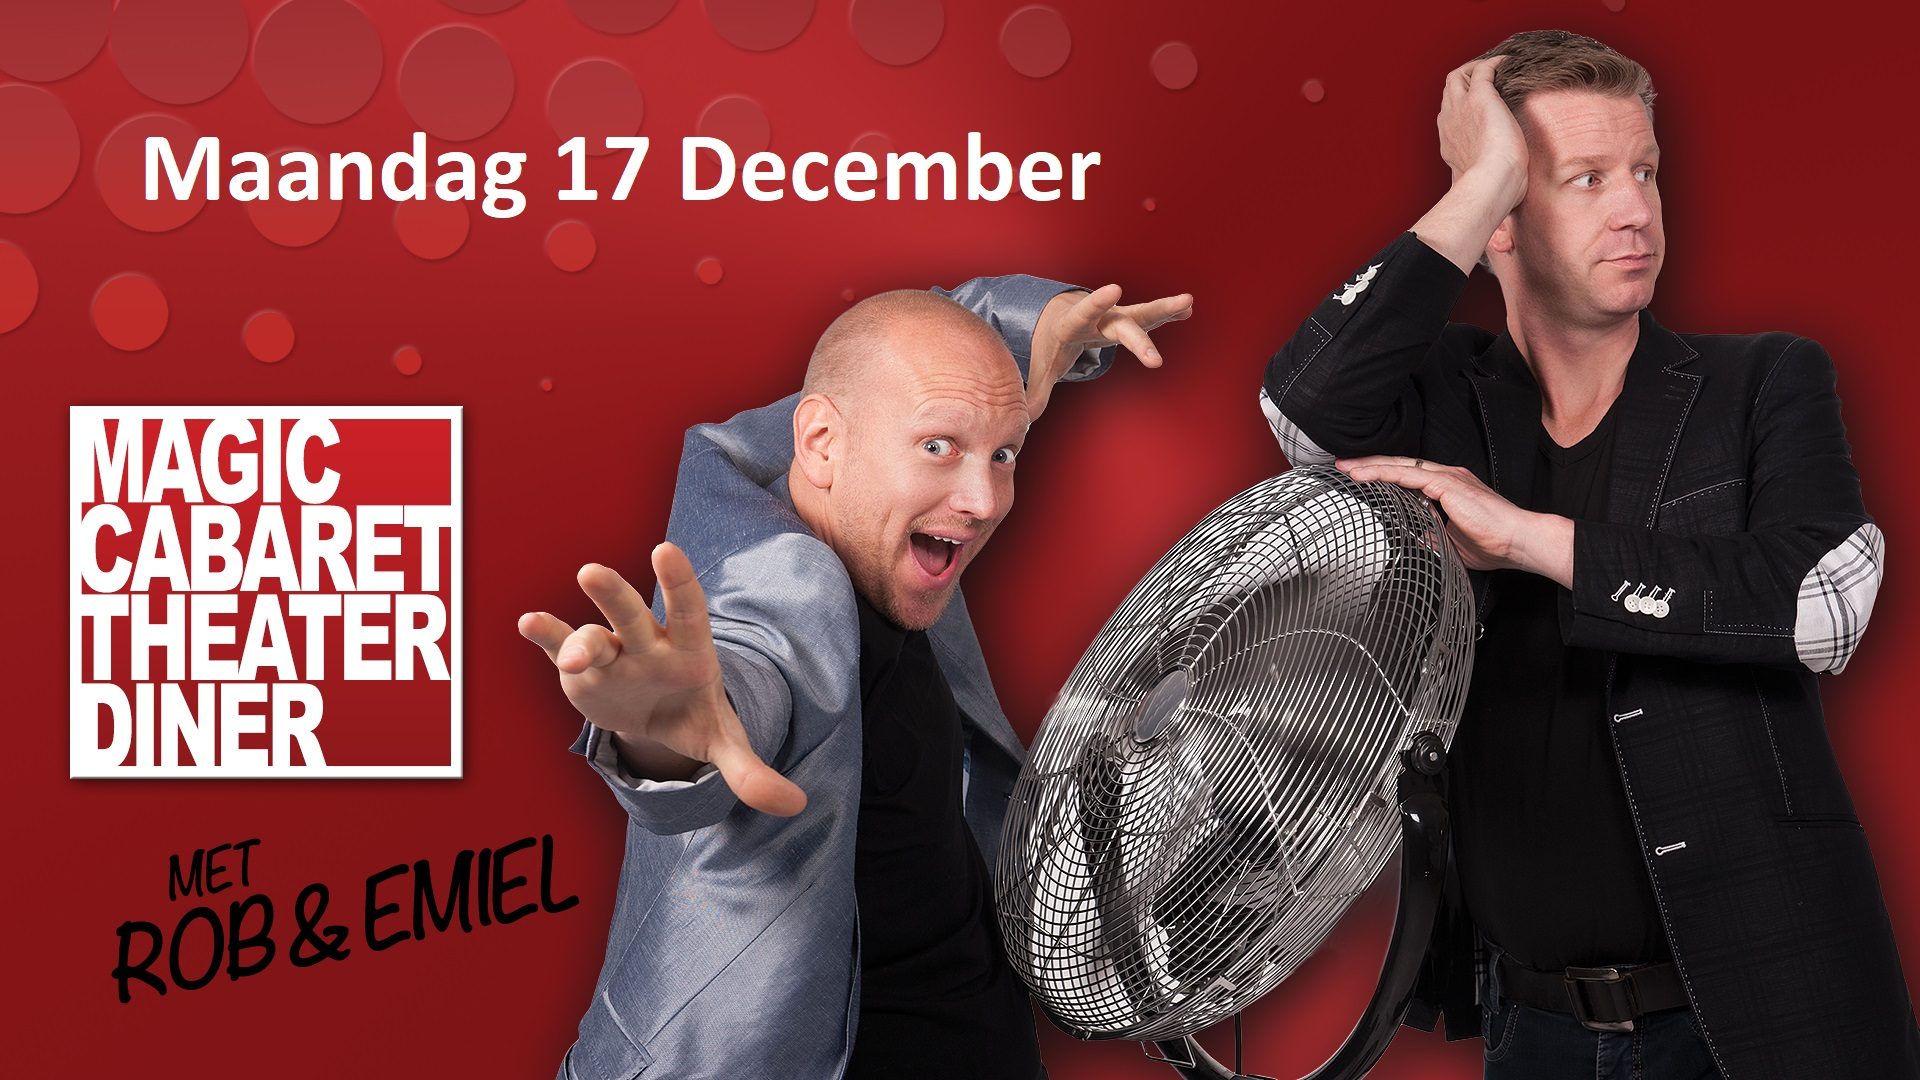 Magic cabaret theater diner met Rob en Emiel